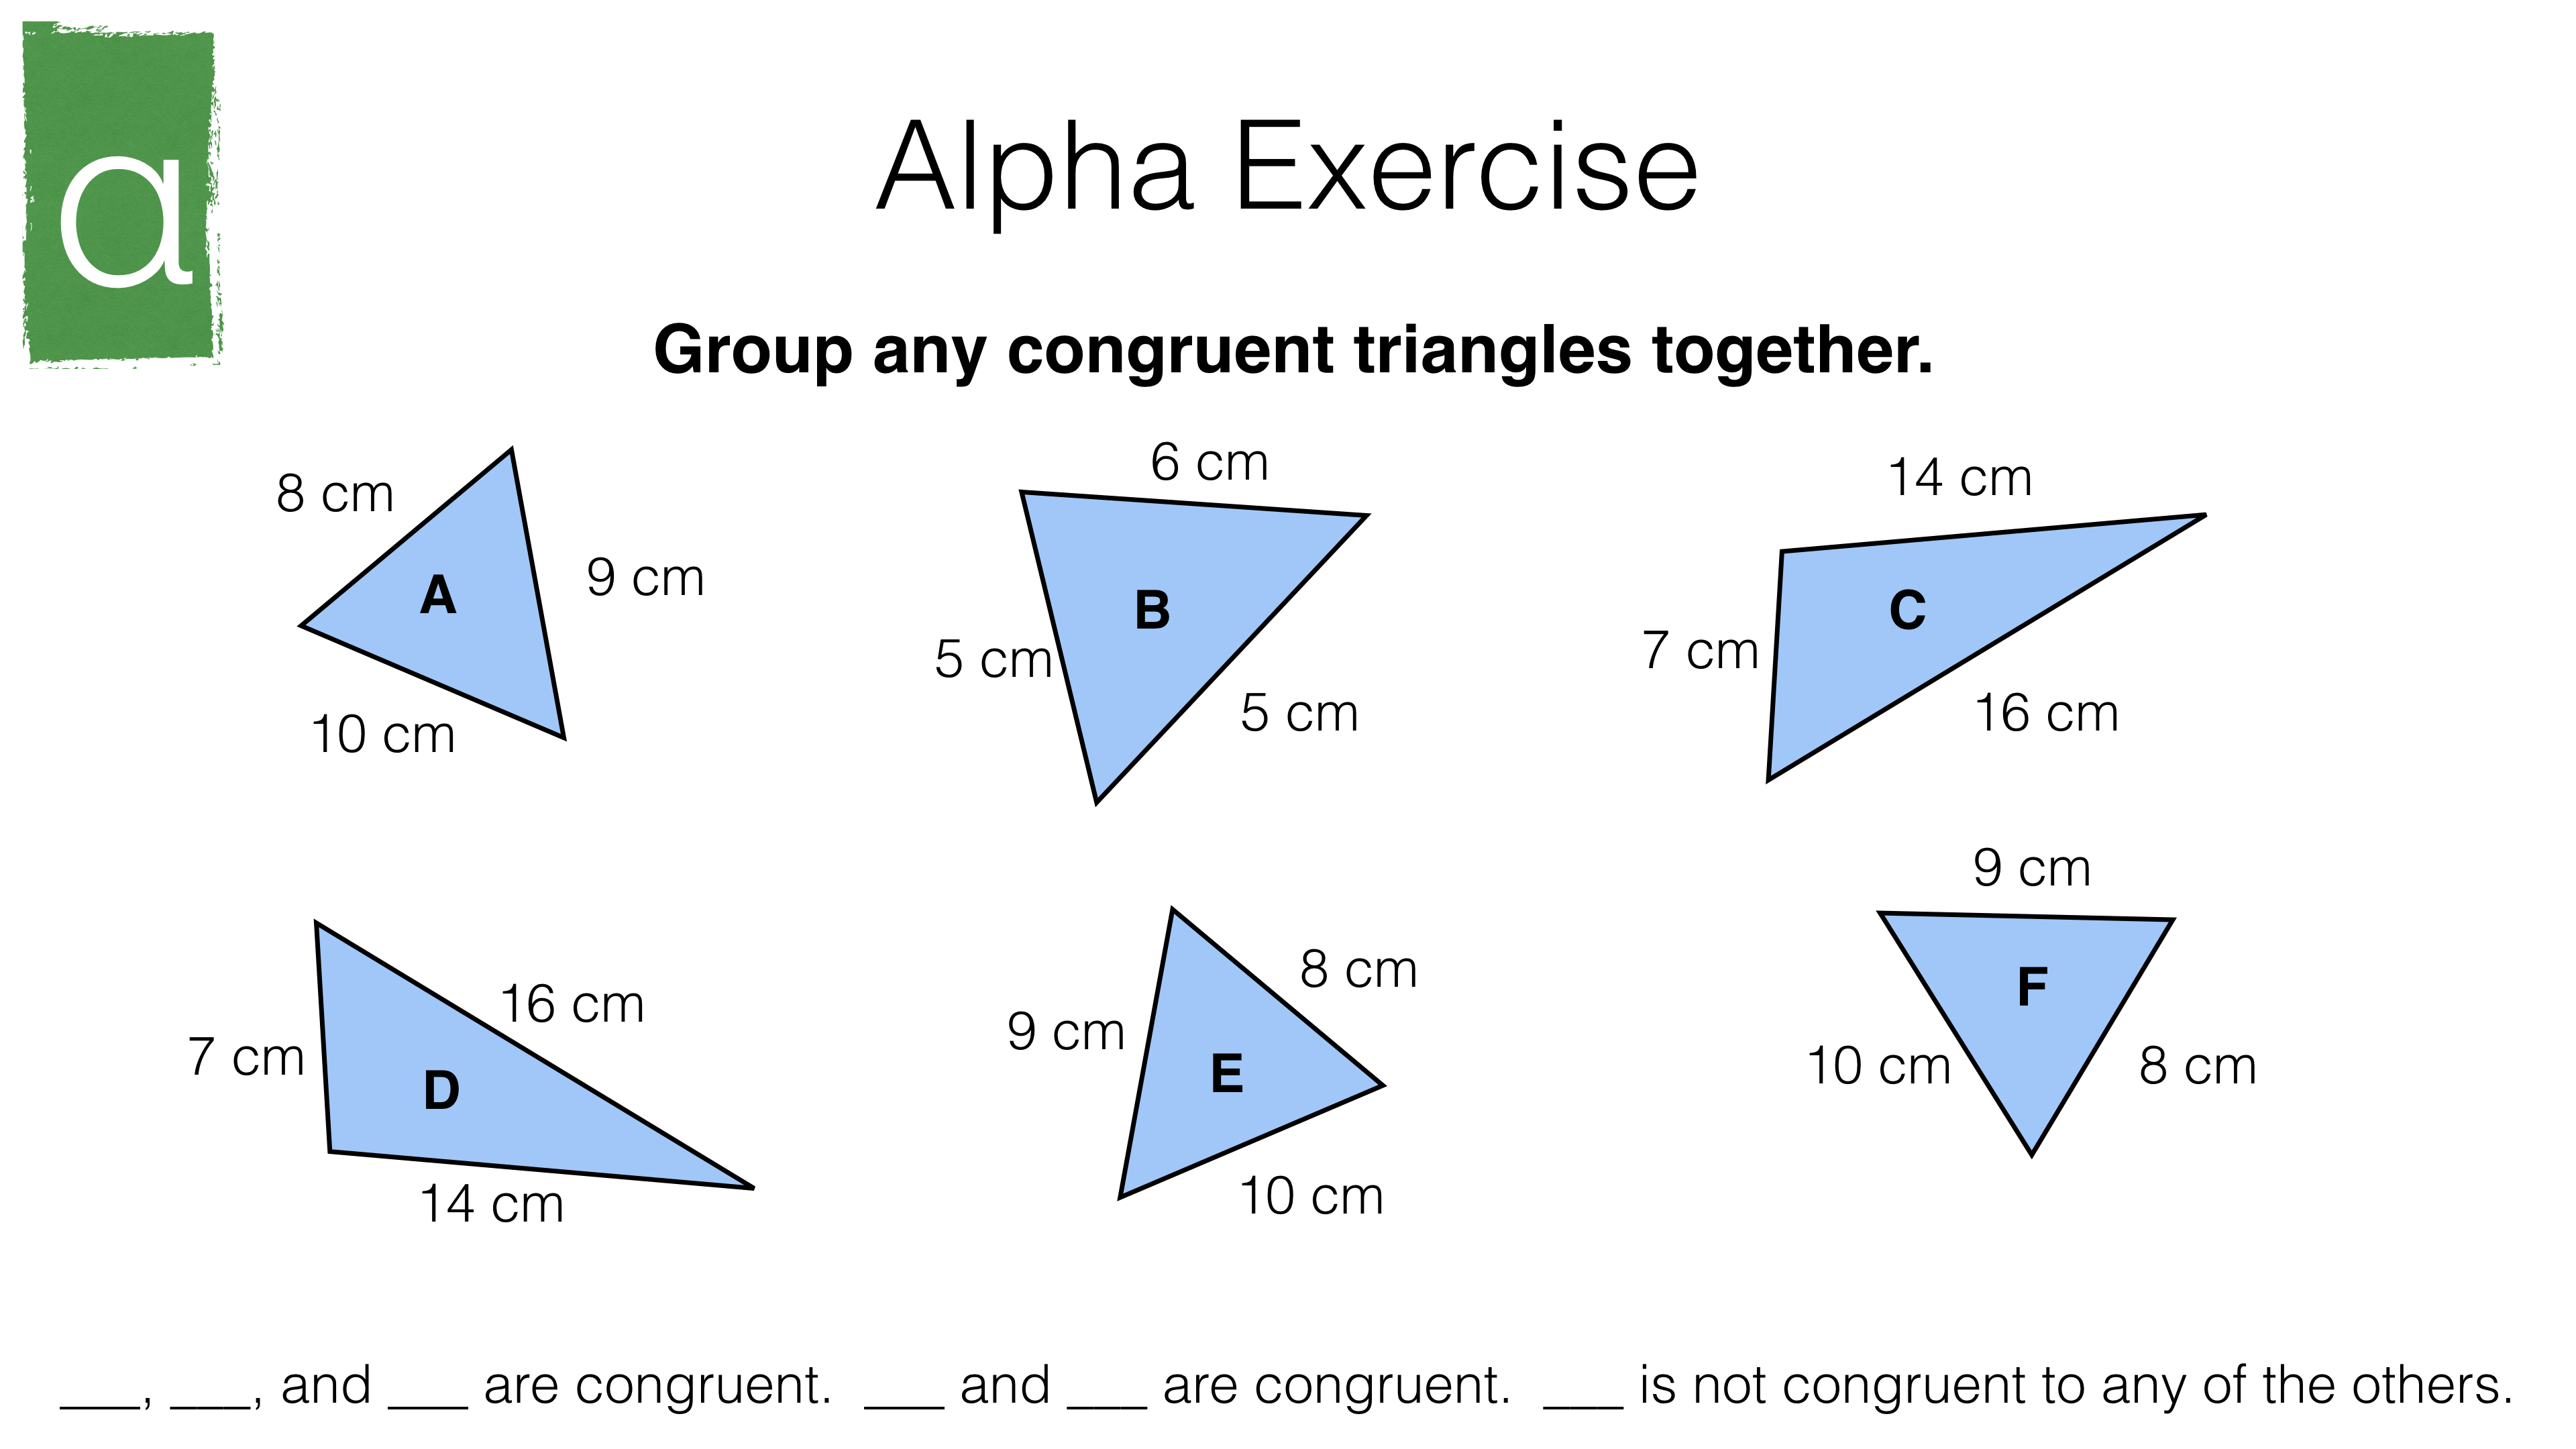 congruence criteria for triangles (sss, sas, asa, rhs)